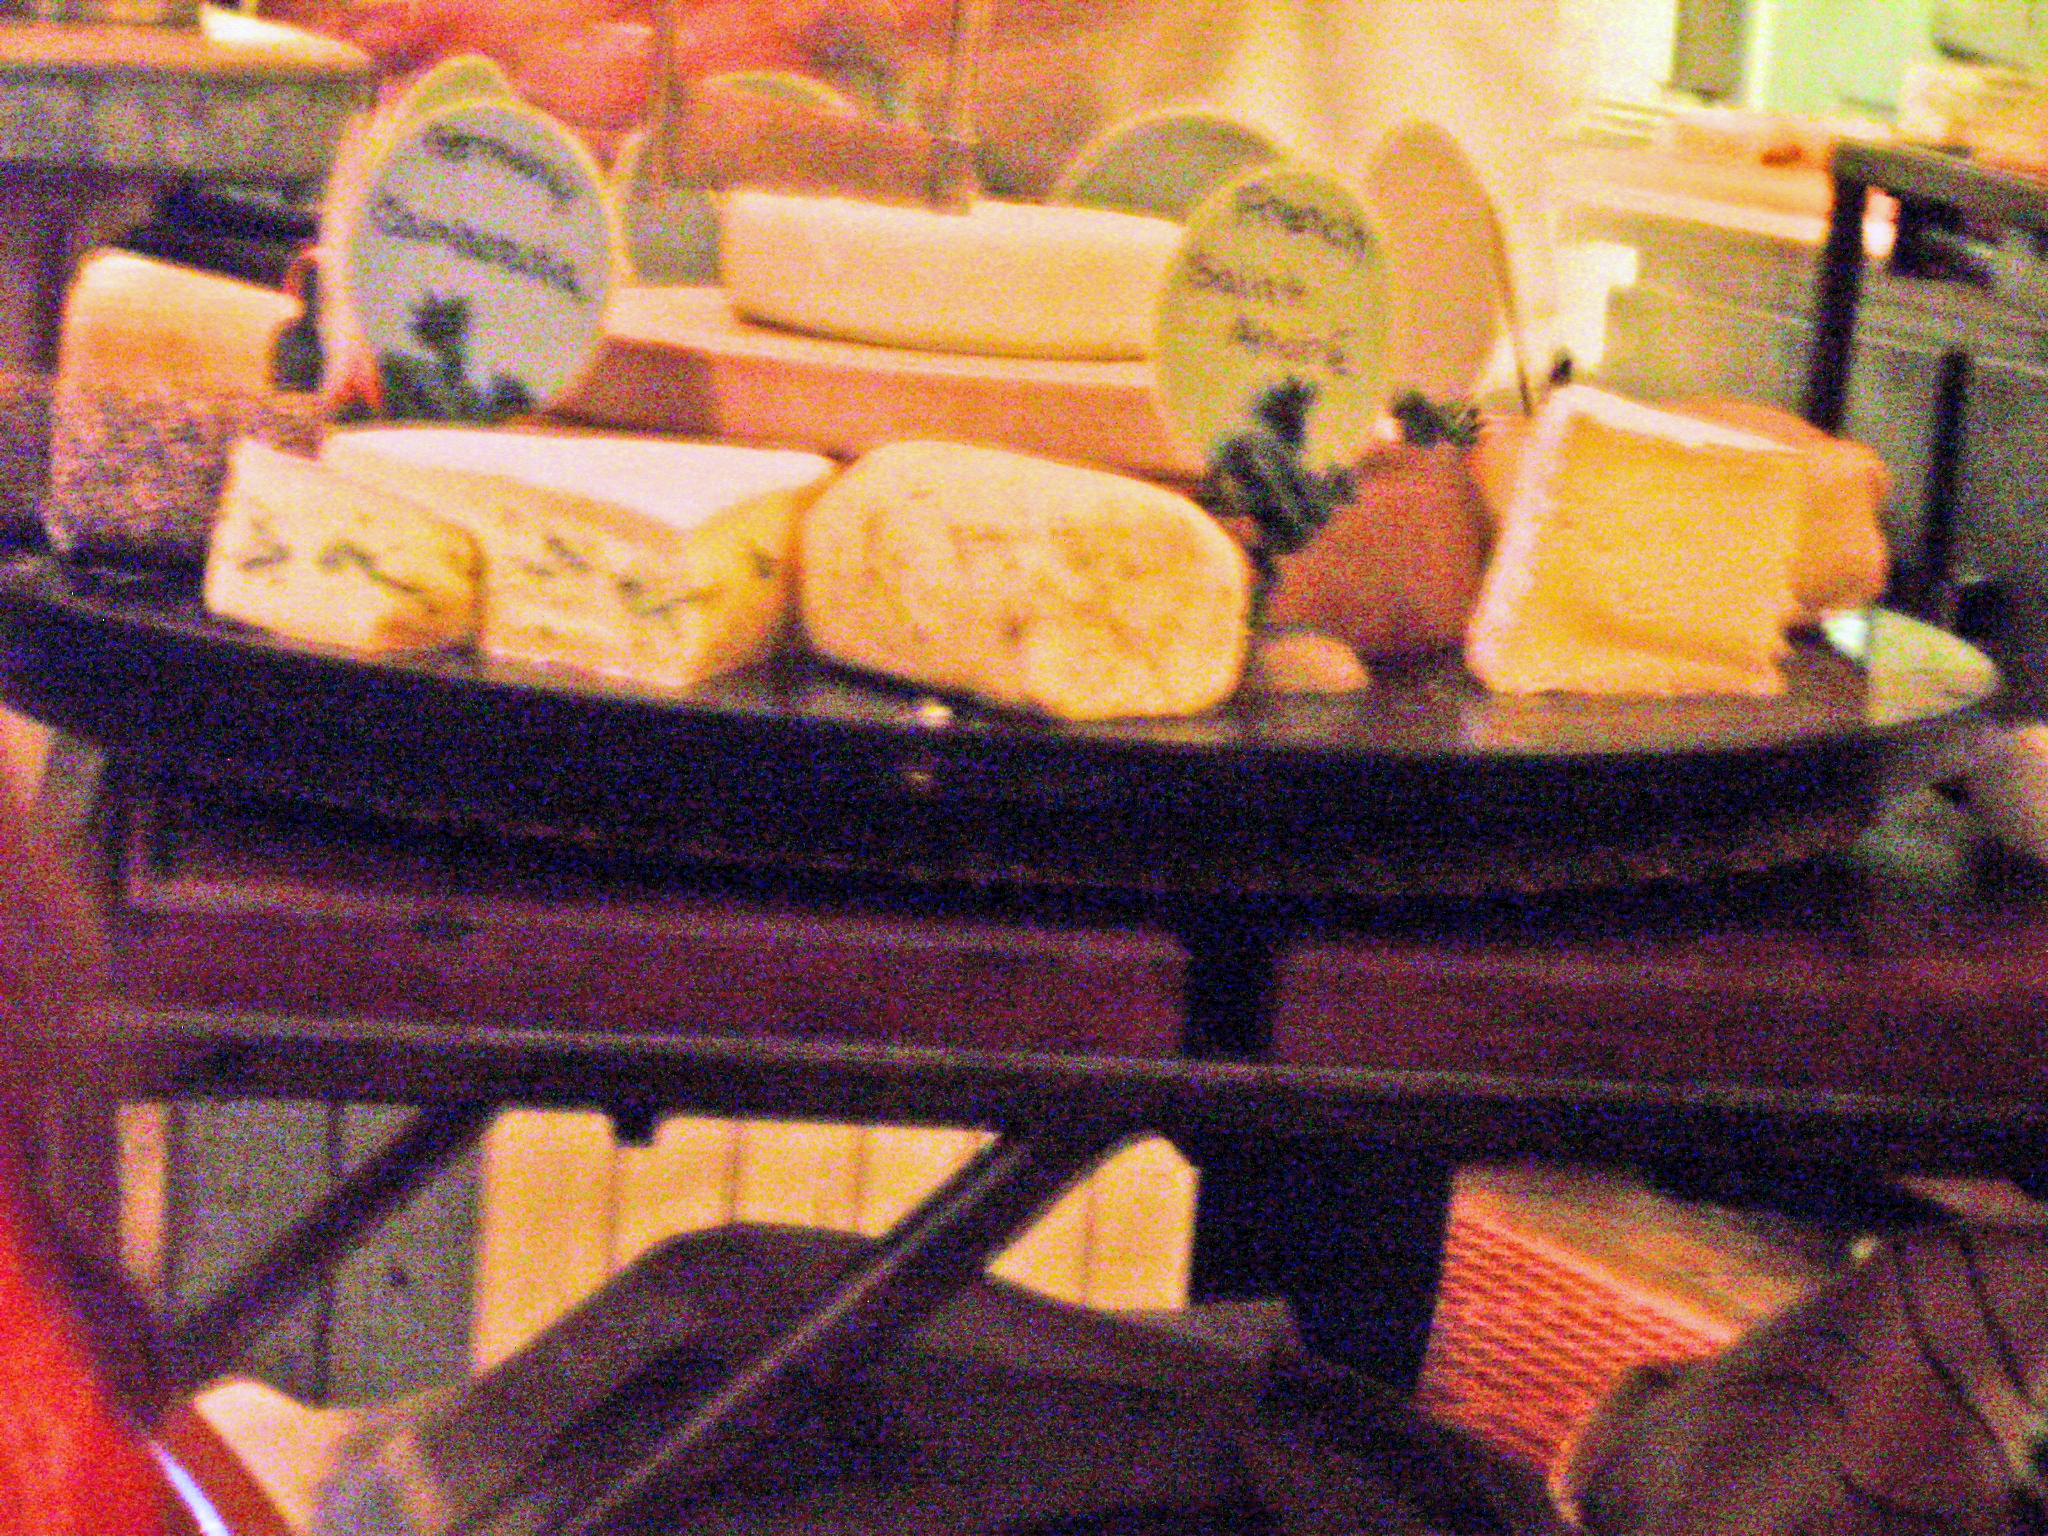 Rise's cheese cart